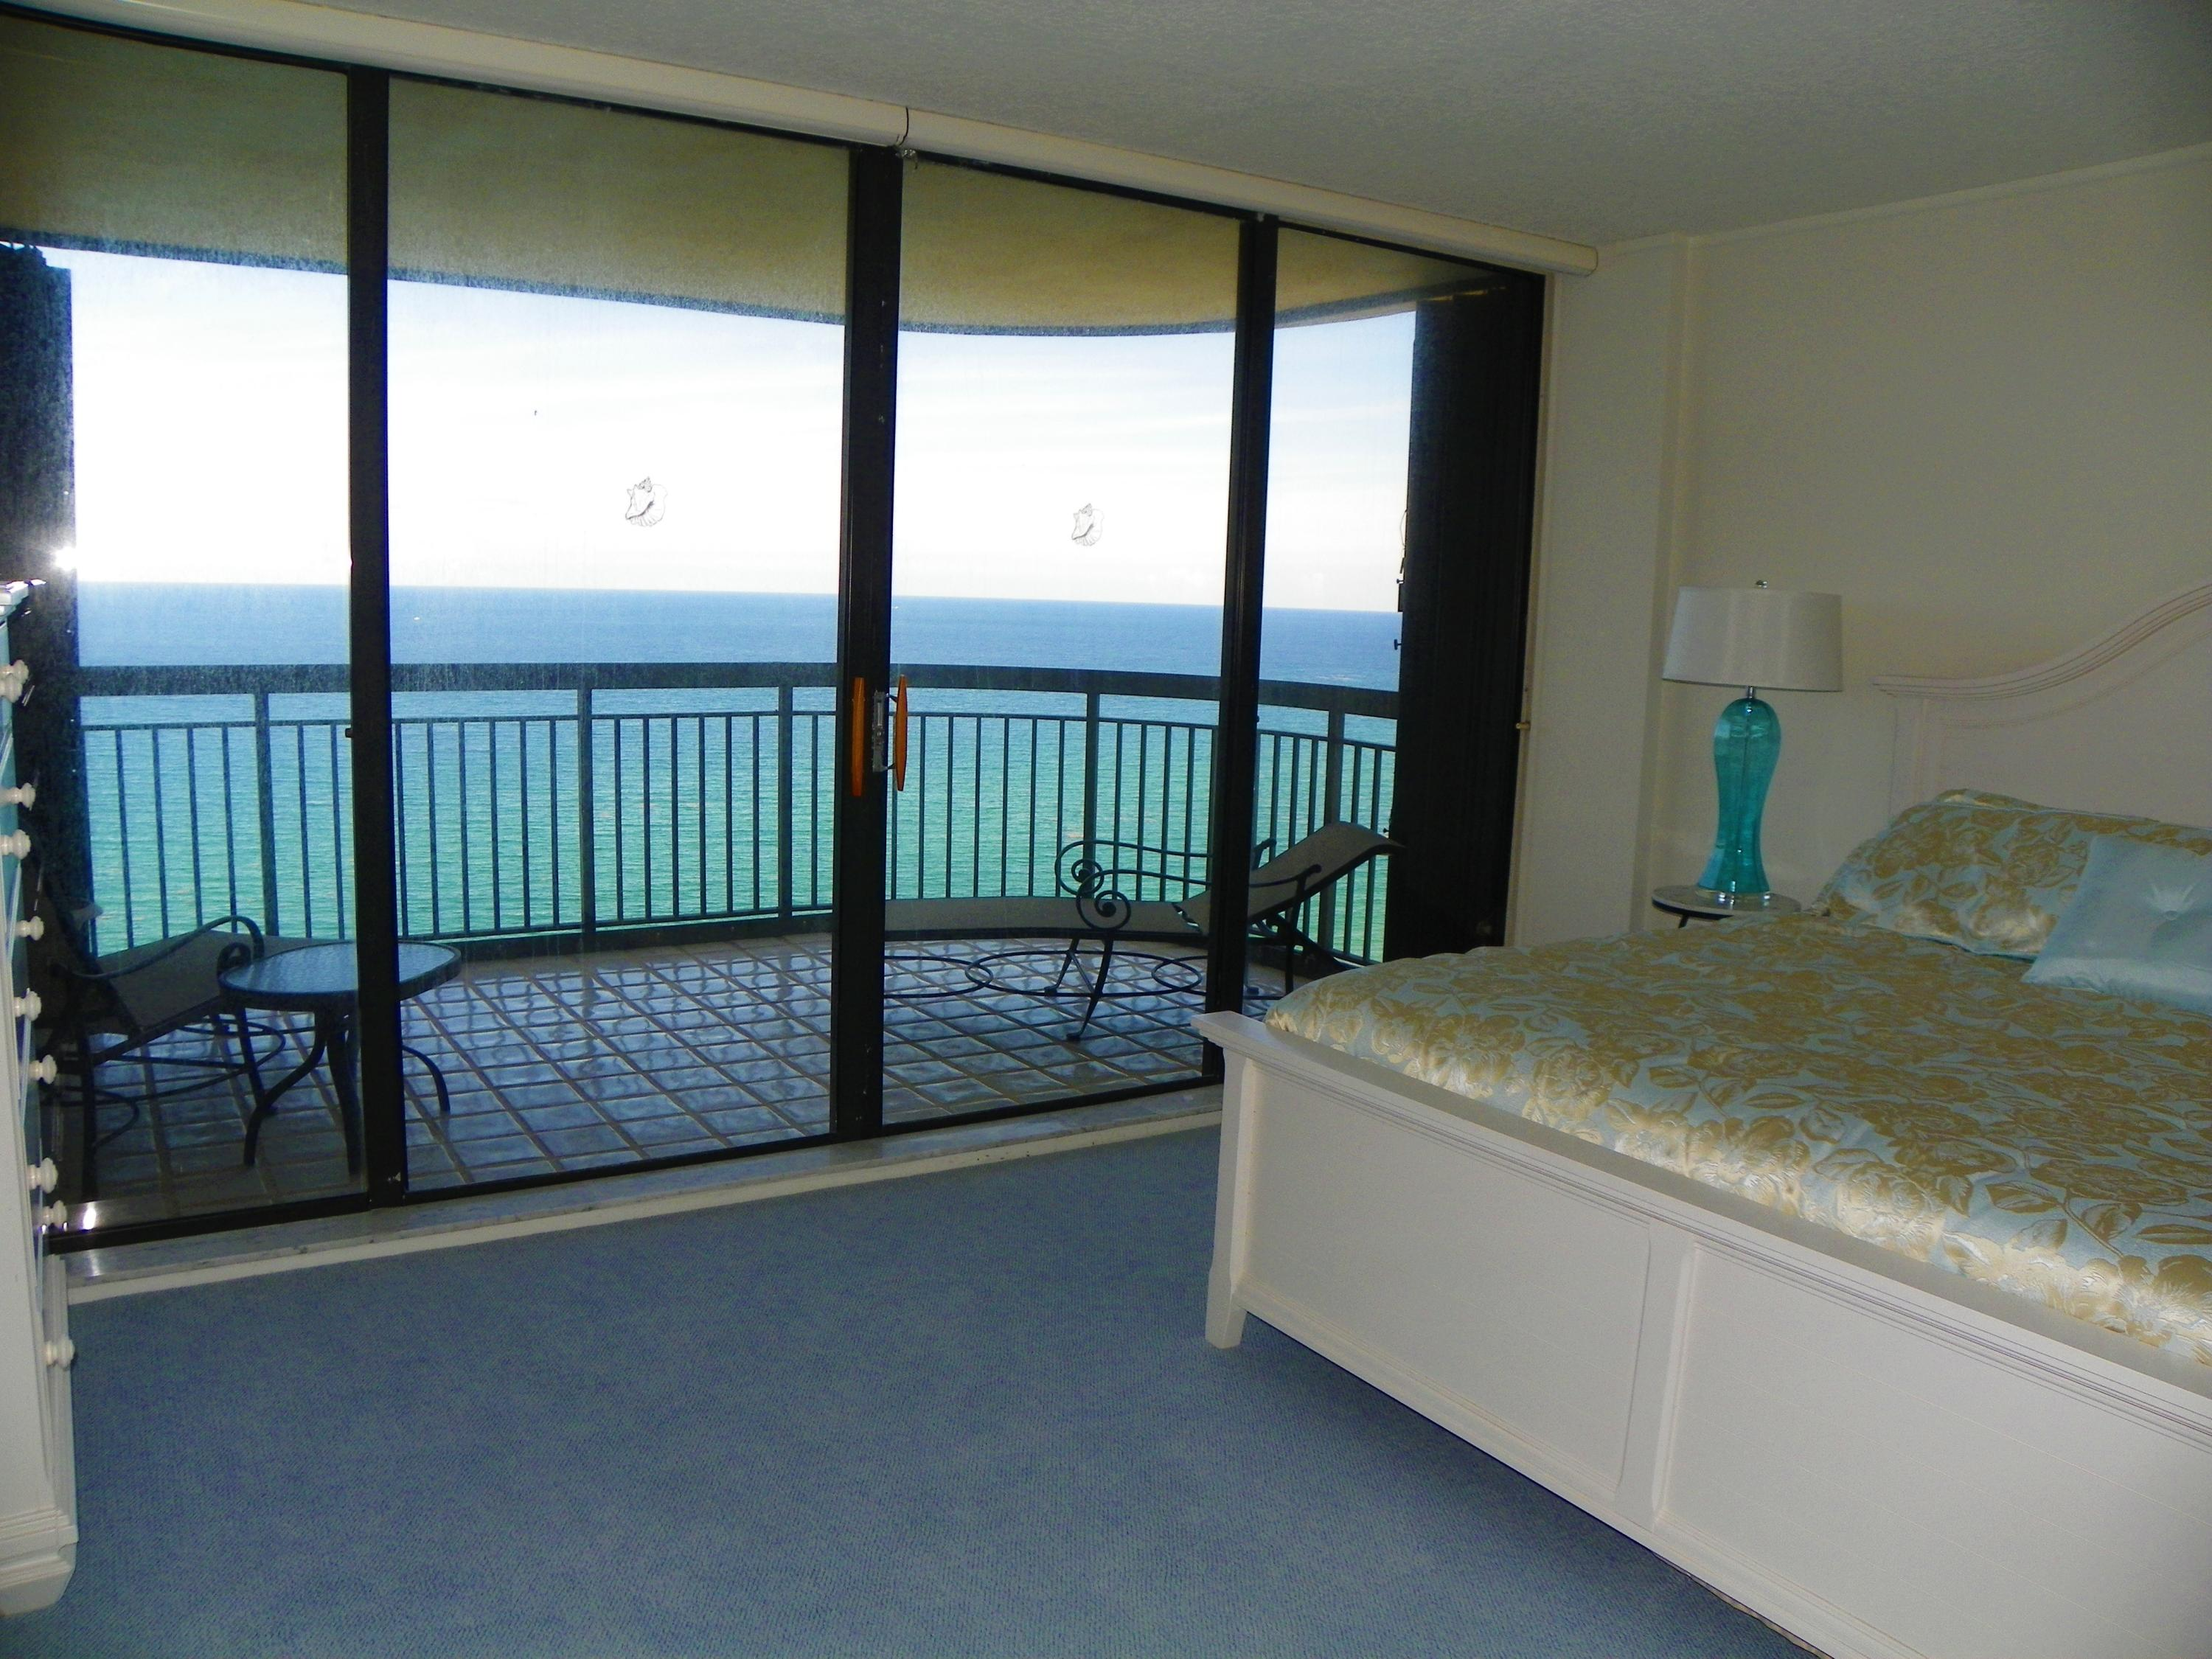 5380 Ocean Drive 19i, Riviera Beach, Florida 33404, 3 Bedrooms Bedrooms, ,3 BathroomsBathrooms,A,Condominium,Ocean,RX-10491195